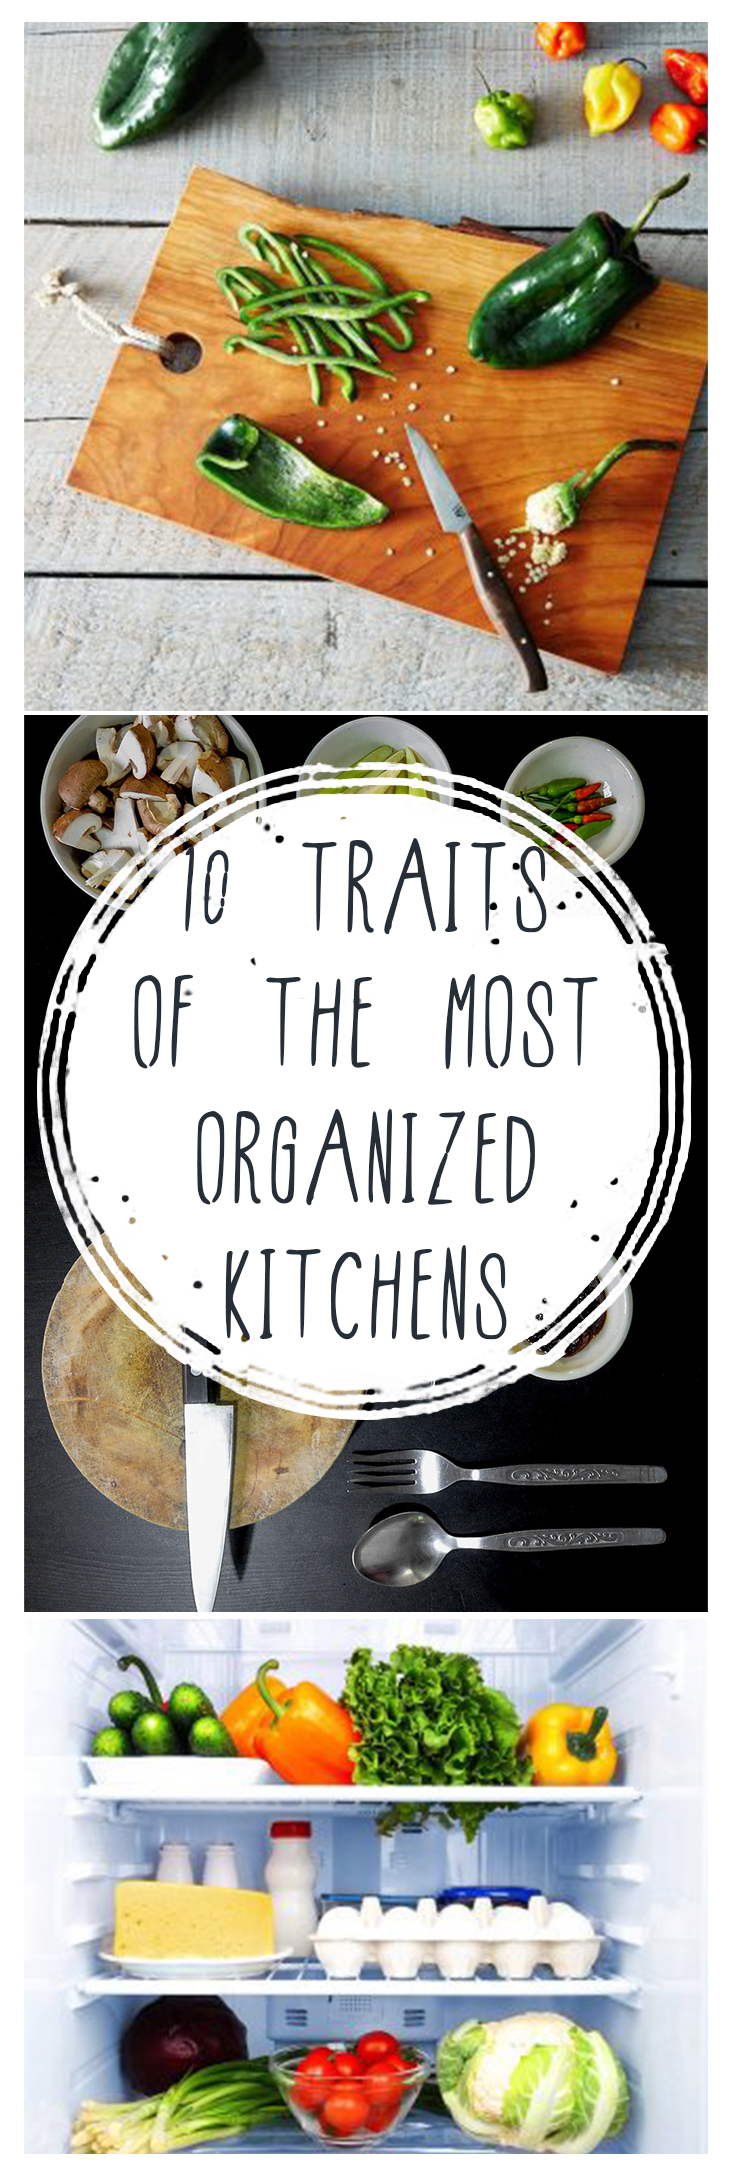 10 Traits of the Most Organized Kitchens